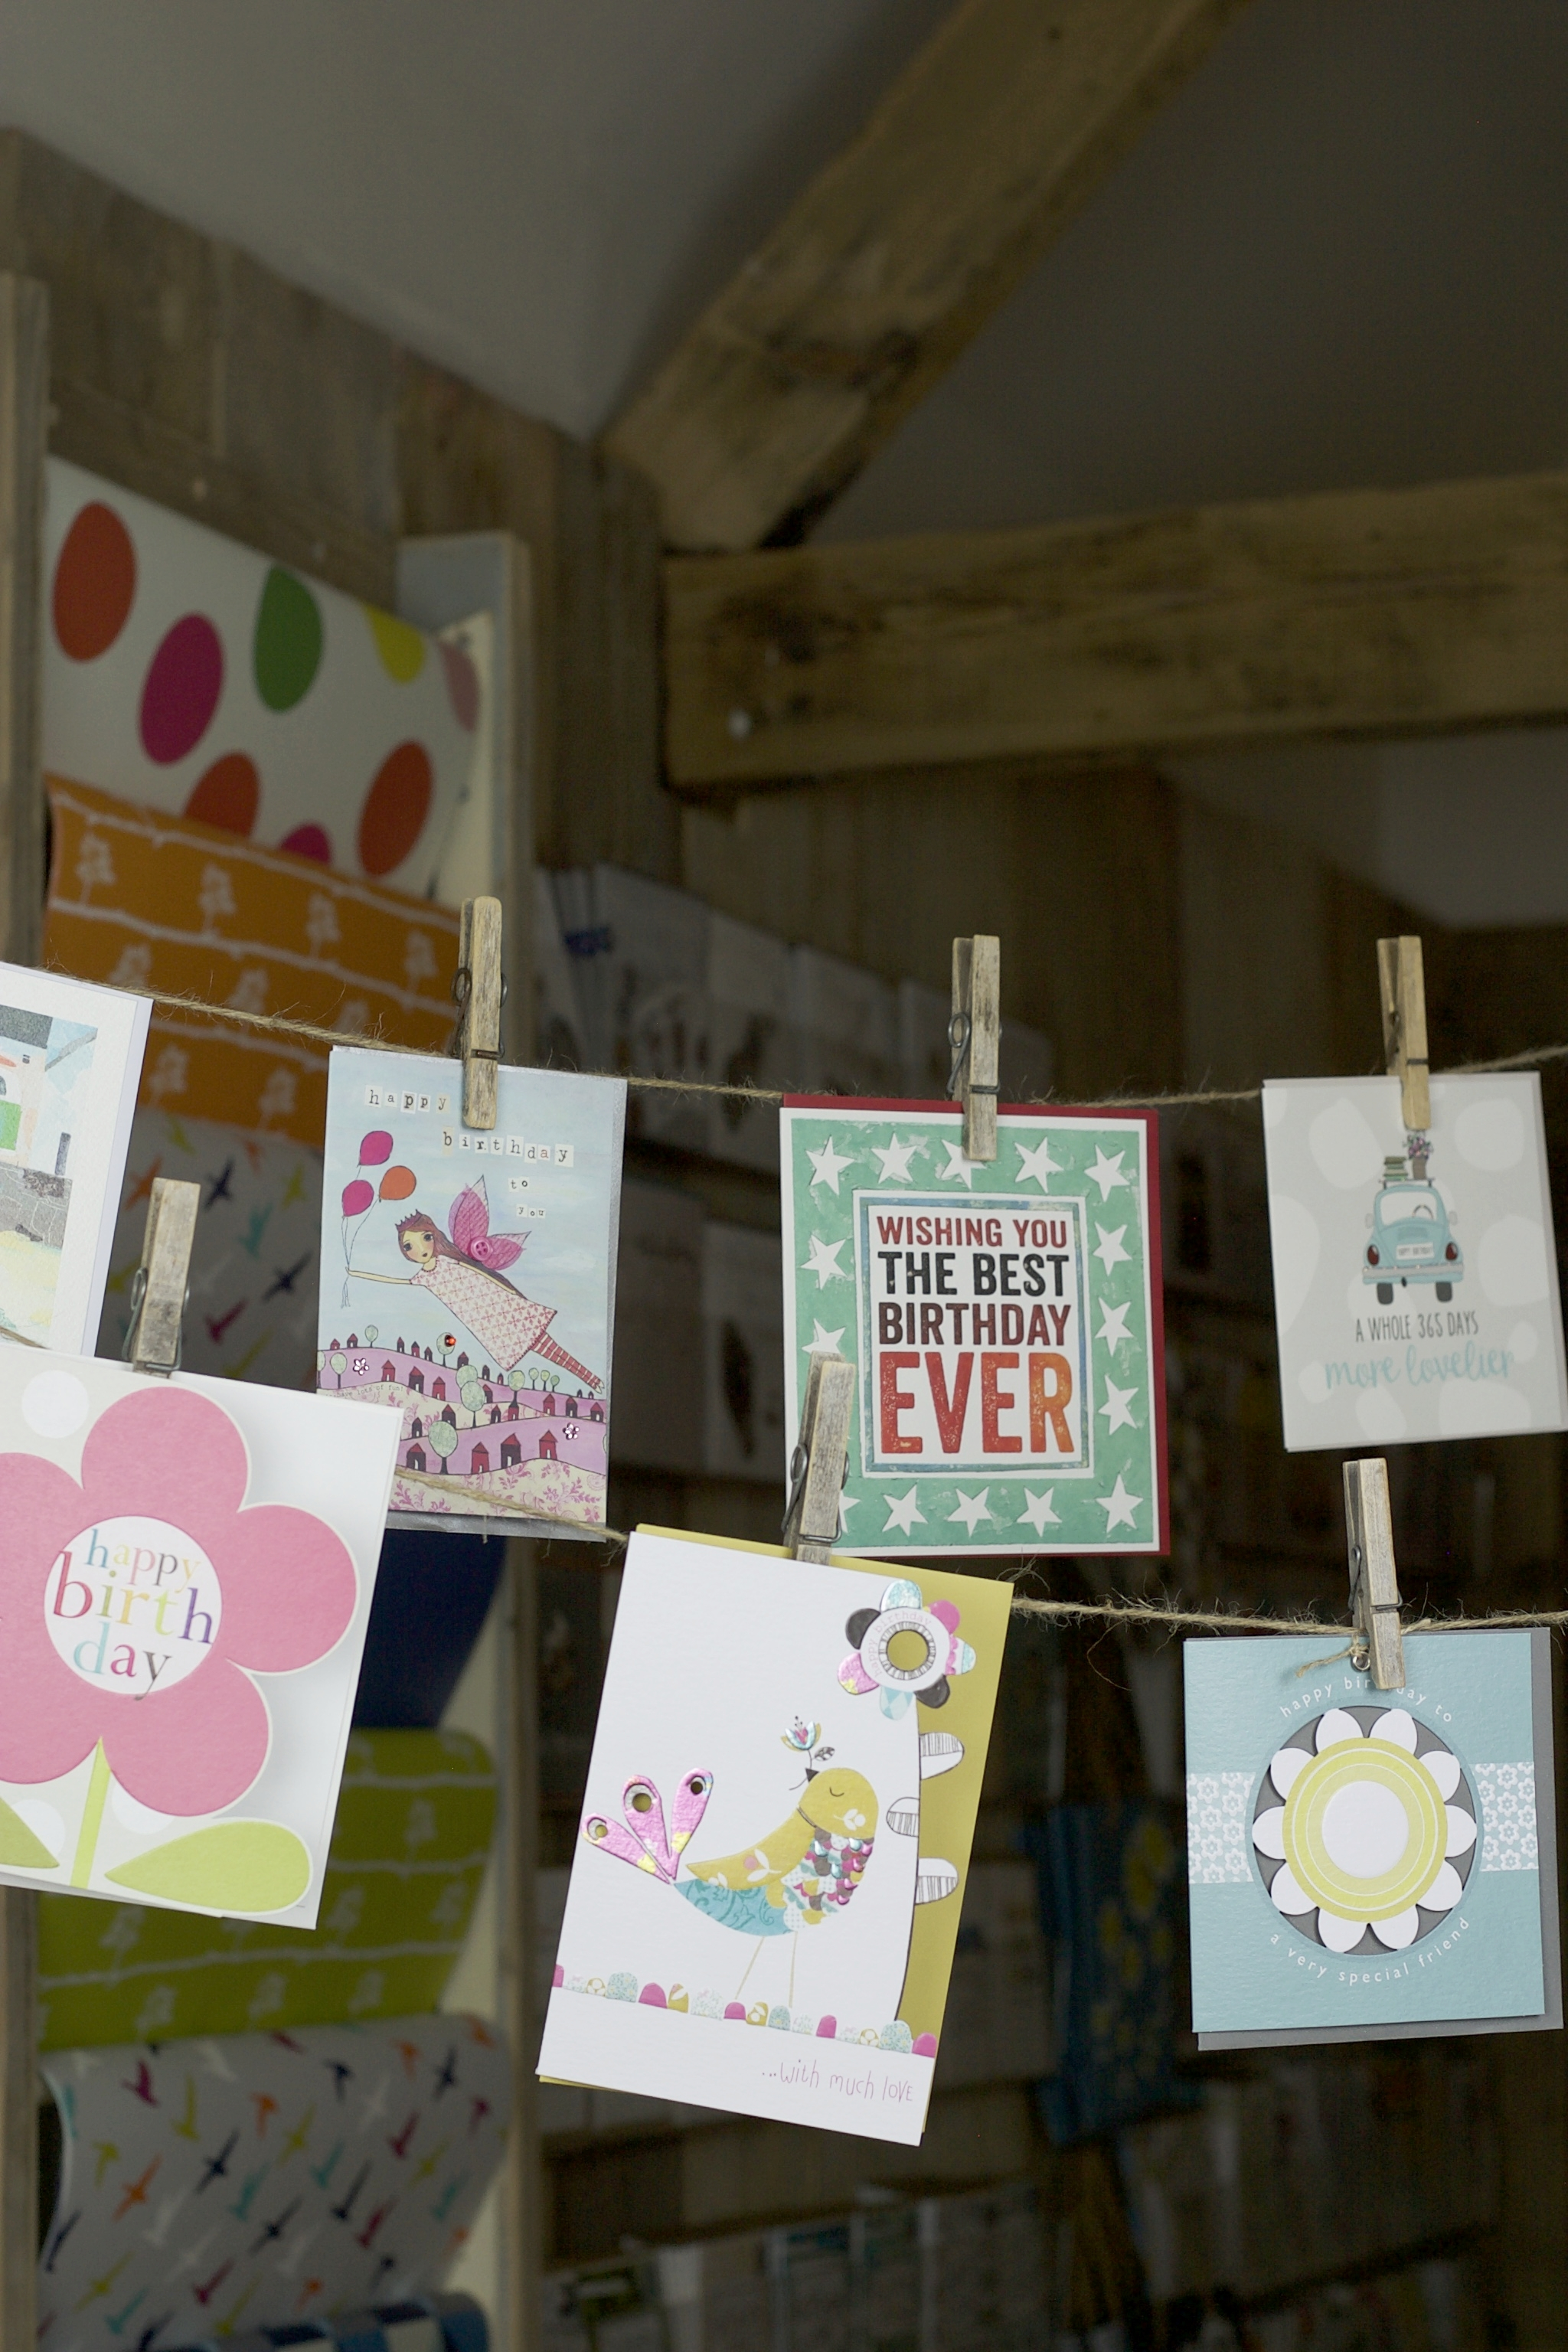 The card room displaying contemporary greetings cards including designs by Cinnamon Aitch and Dandelion Stationery.